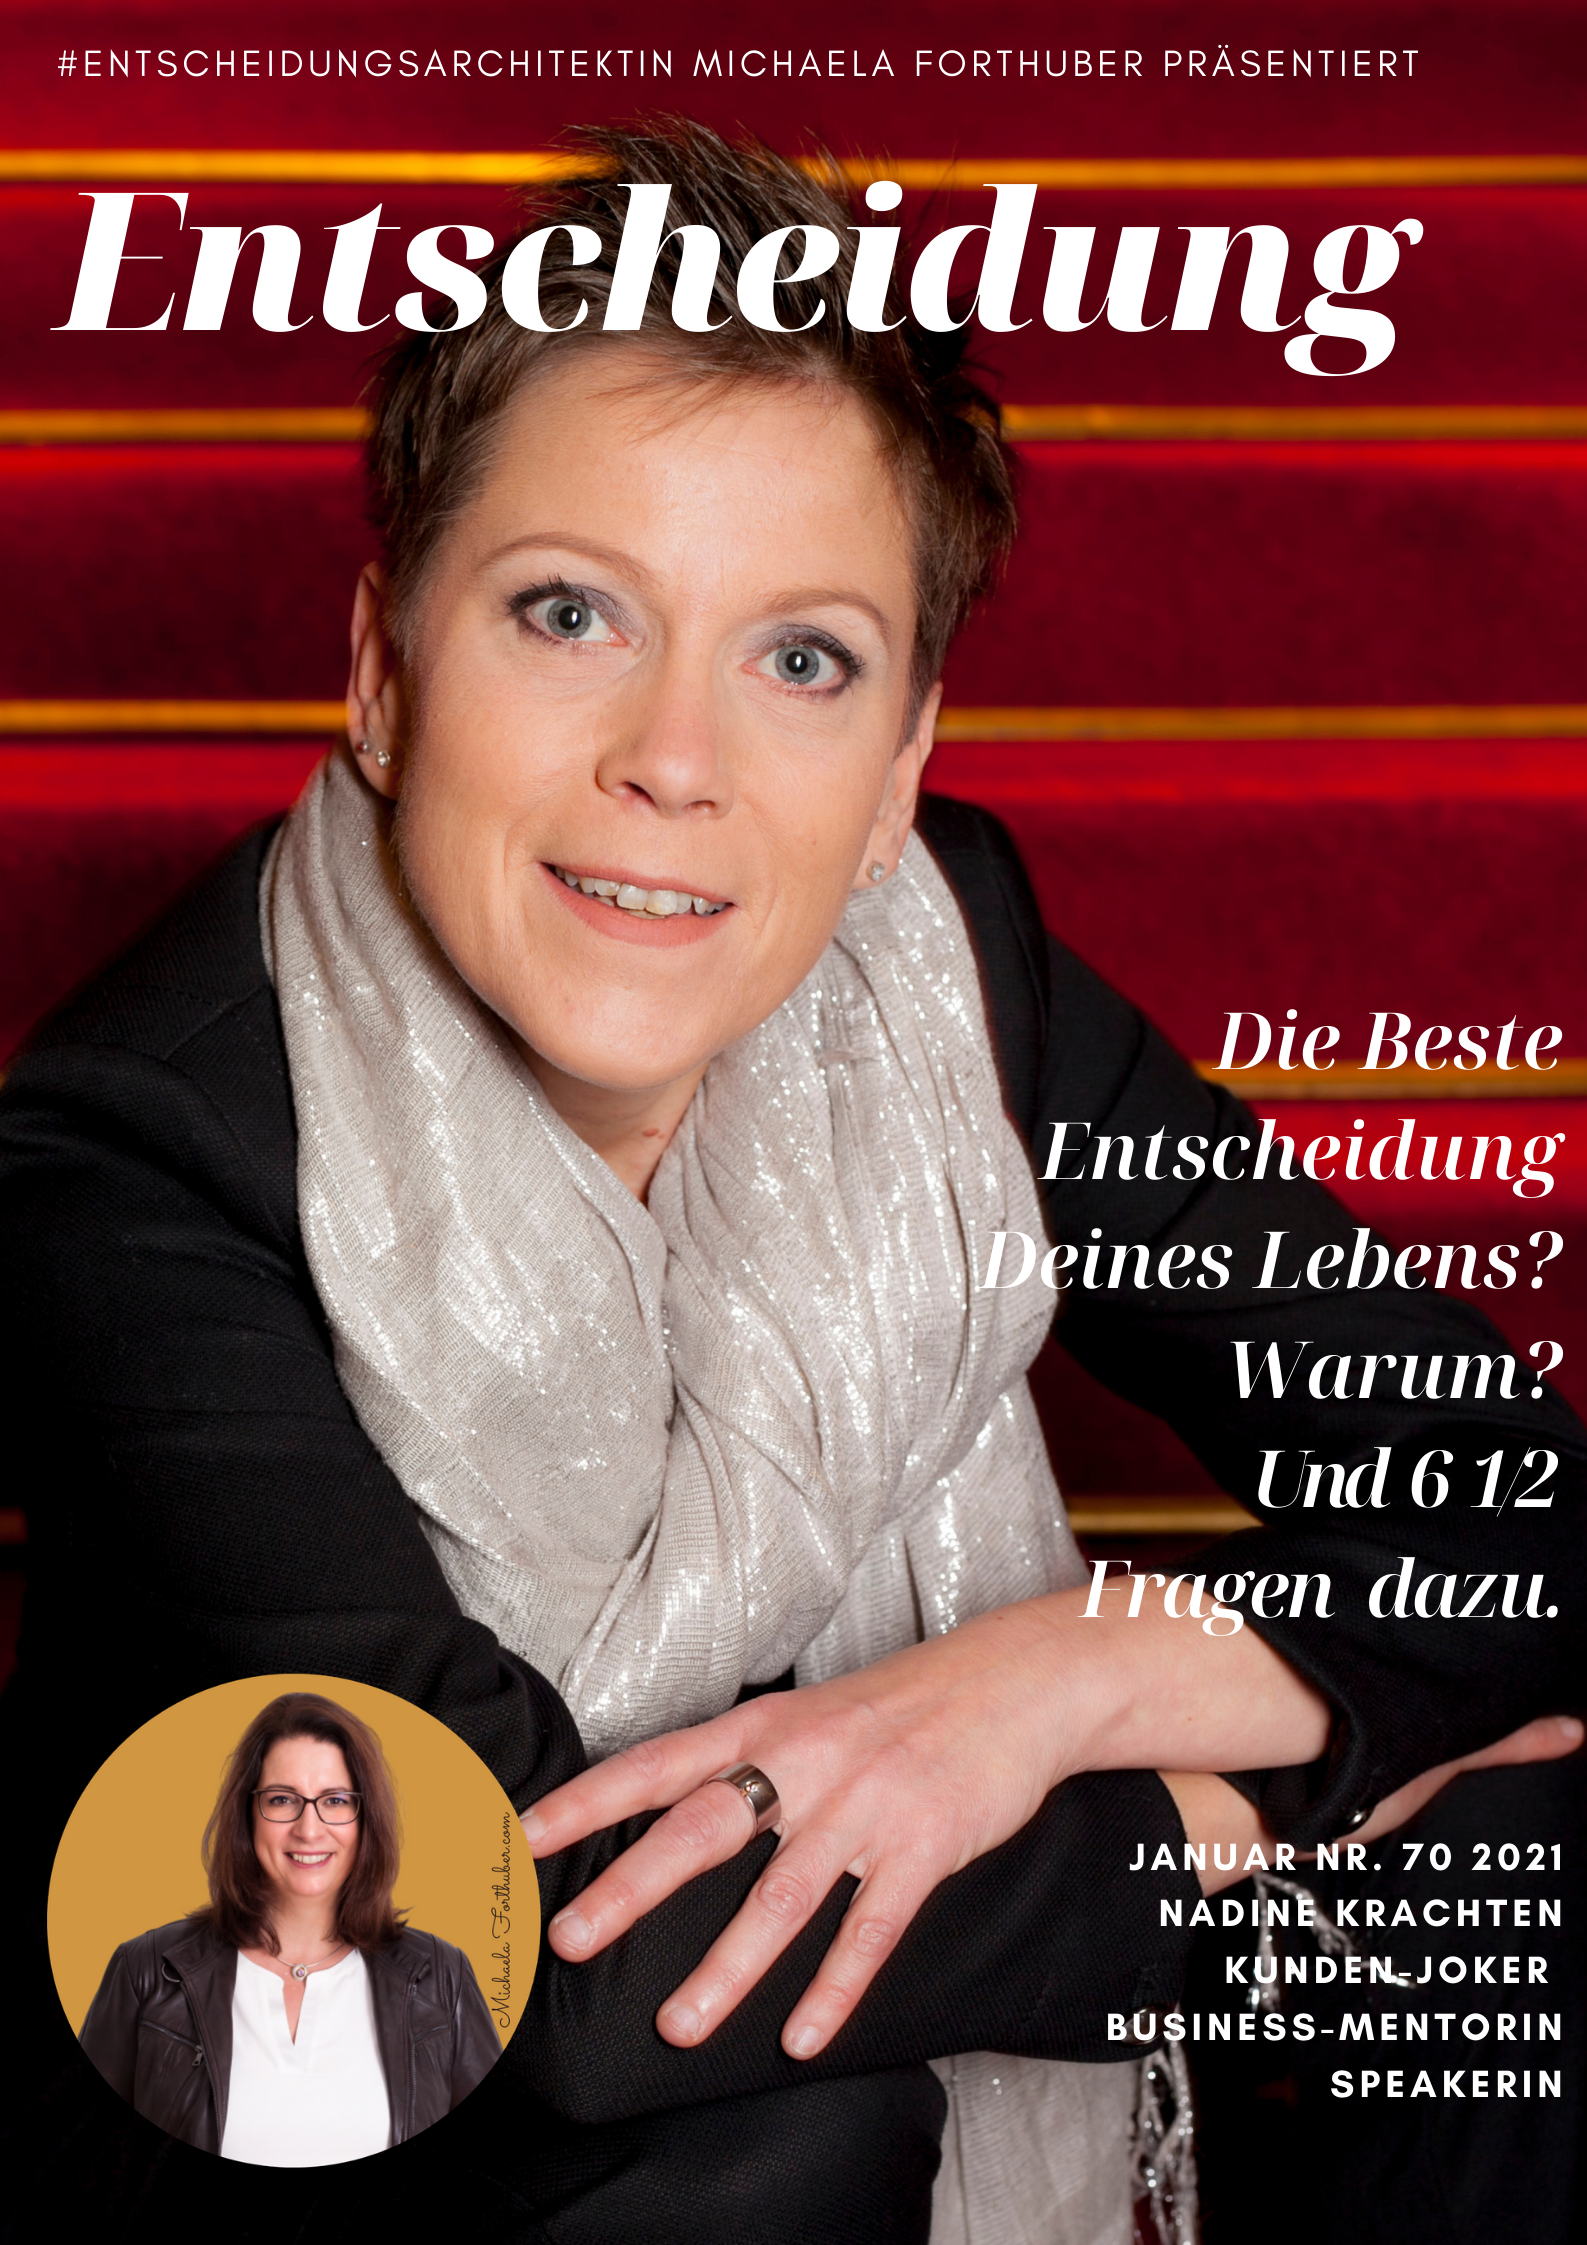 Blog Interview Entscheiden Cover Michaela Forthuber Interview Blog Nadine Krachten #Entscheidungsarchitektin